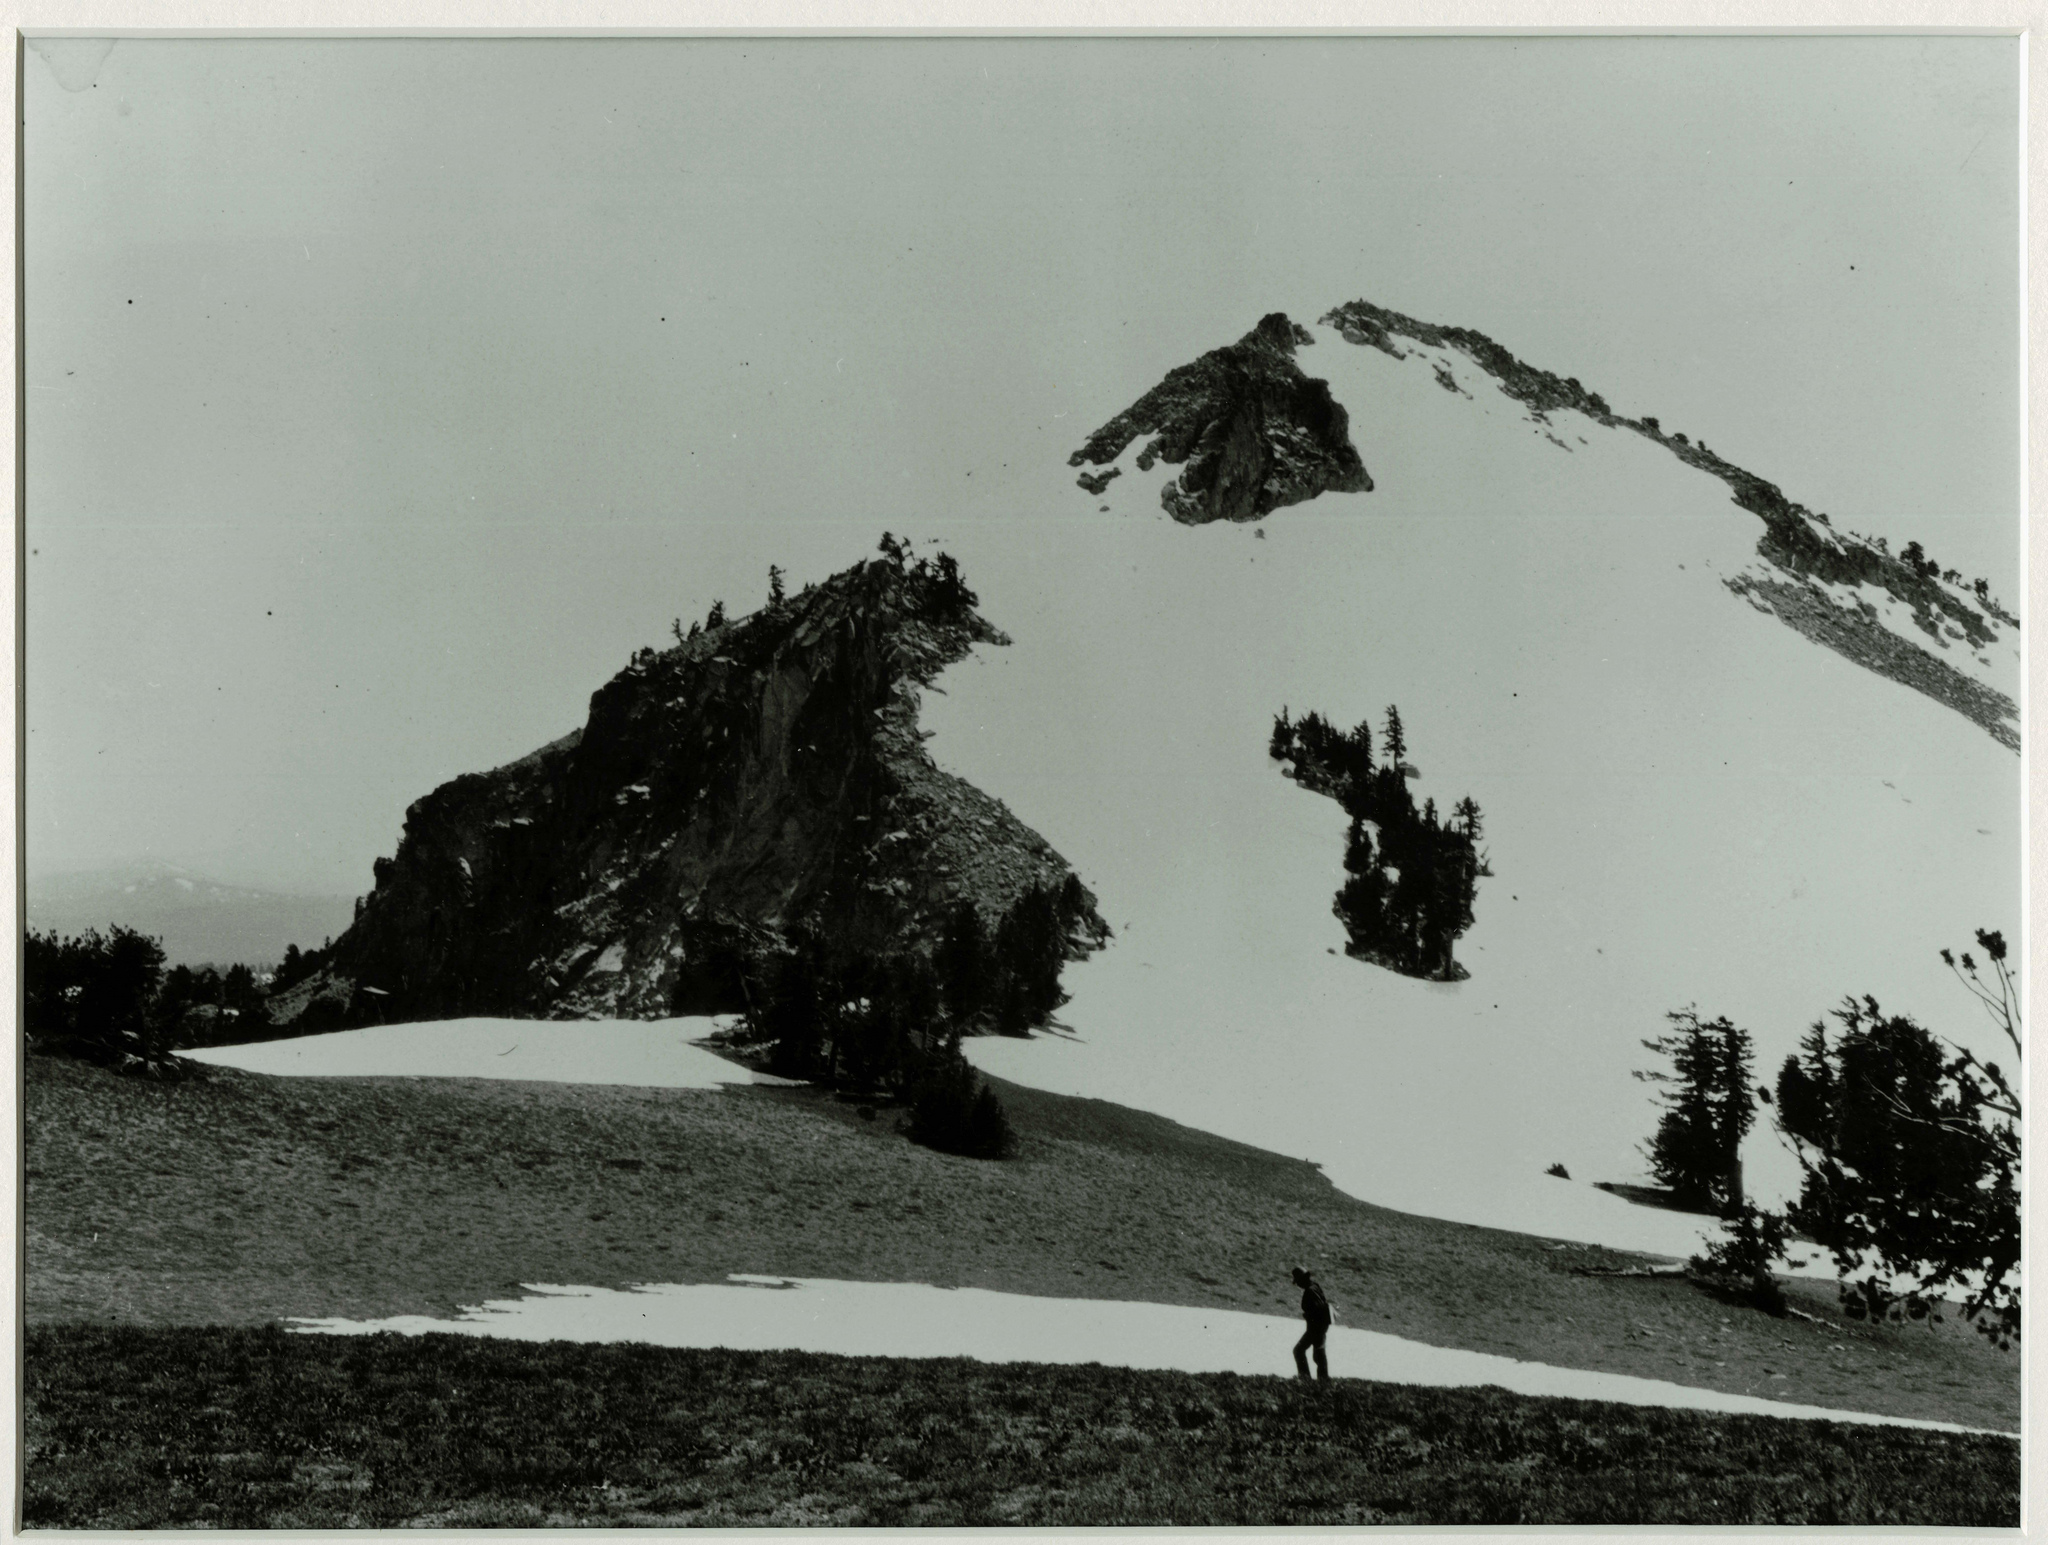 At Watchman Overlook with the Watchman in the distance. Photographed by J.S. Diller in the 1890s or 1901 during the USGS survey of the Crater Lake area.   Credit: Courtesy CRLA Museum & Archive Collections